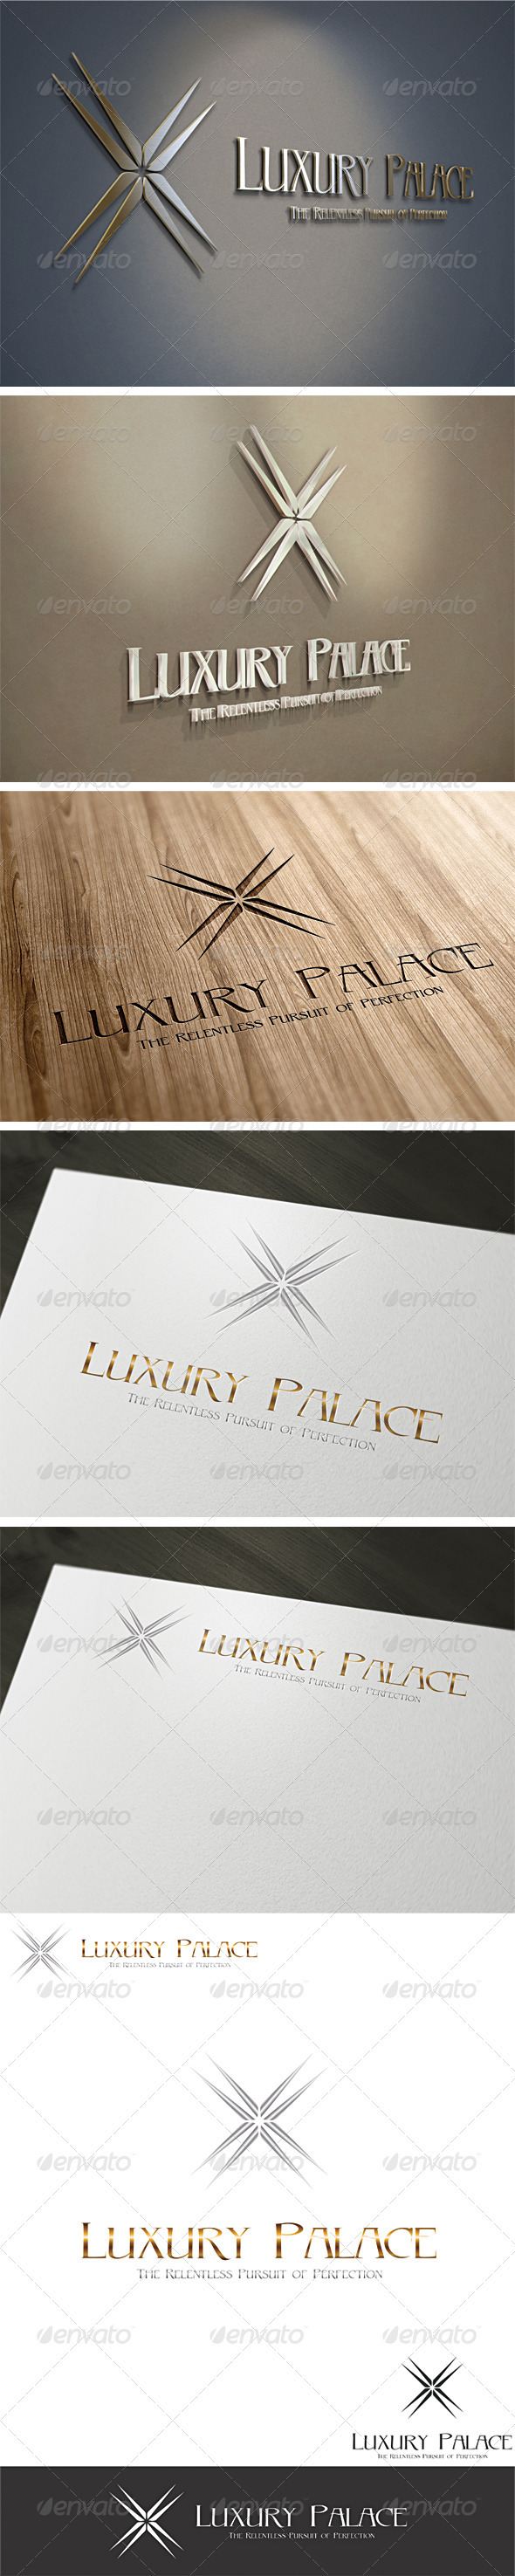 3D Luxury Hotels Logo Template - 3d Abstract